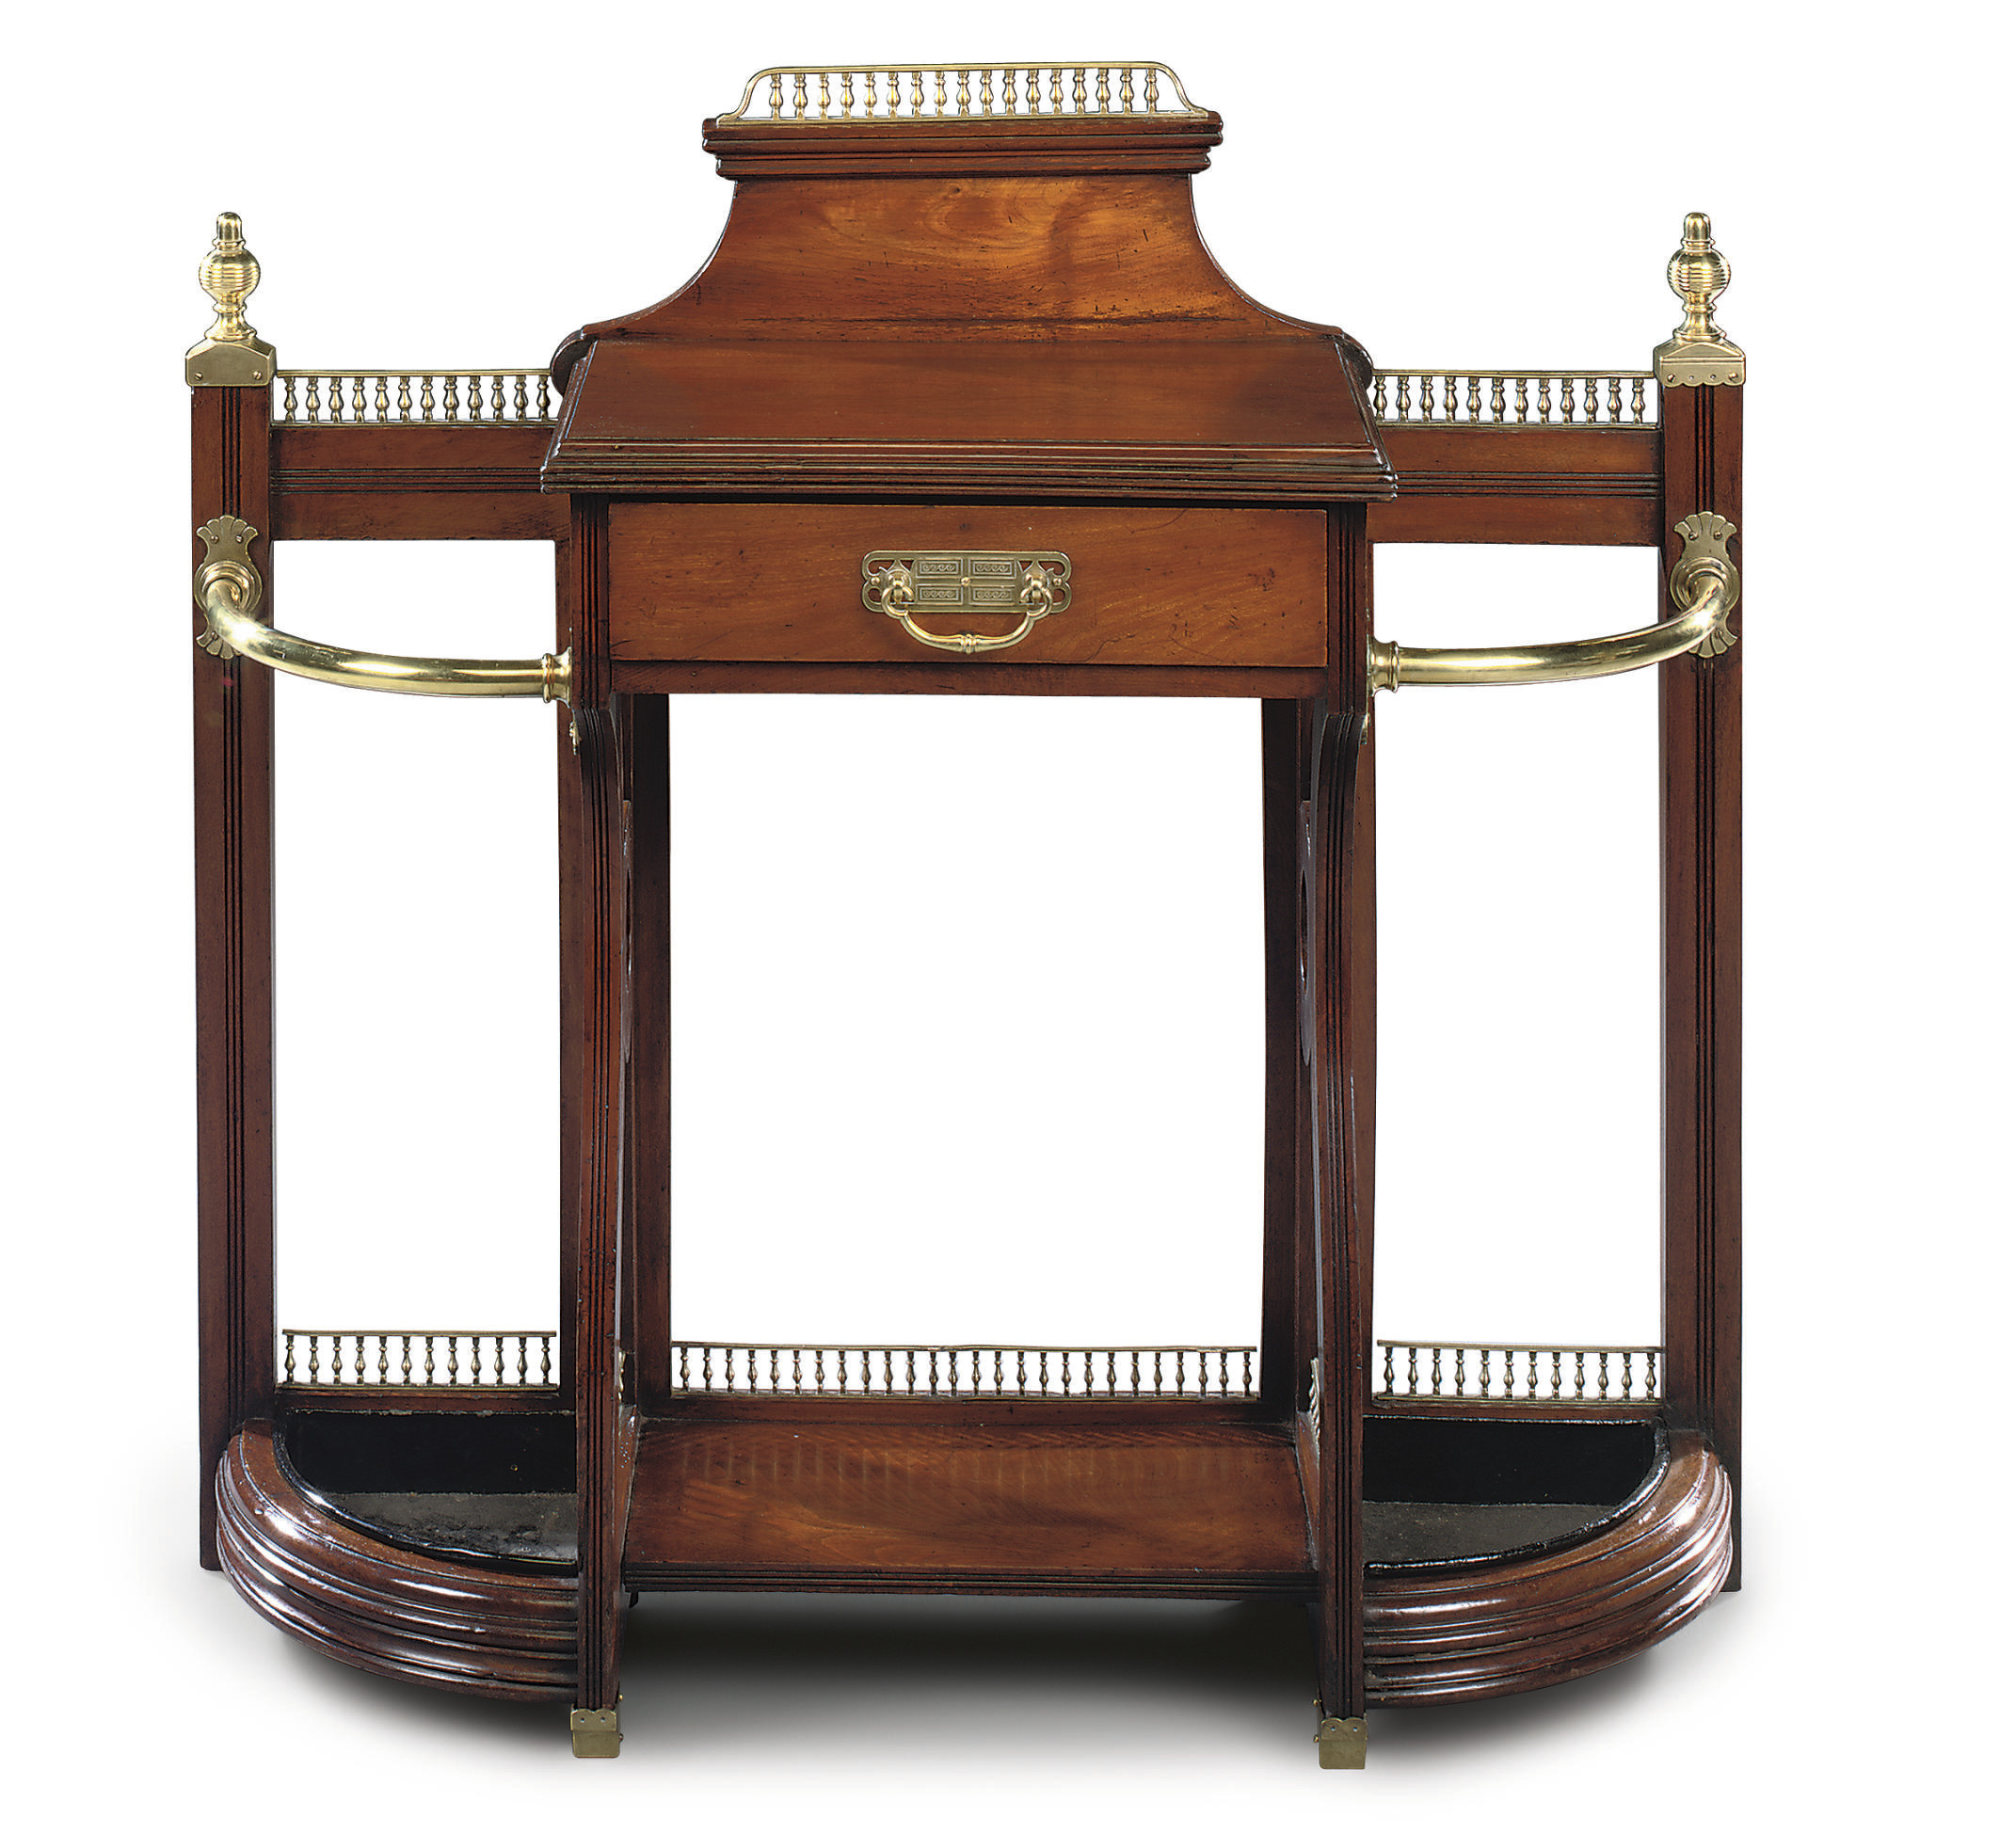 A LATE VICTORIAN BRASS-MOUNTED WALNUT HALL STAND